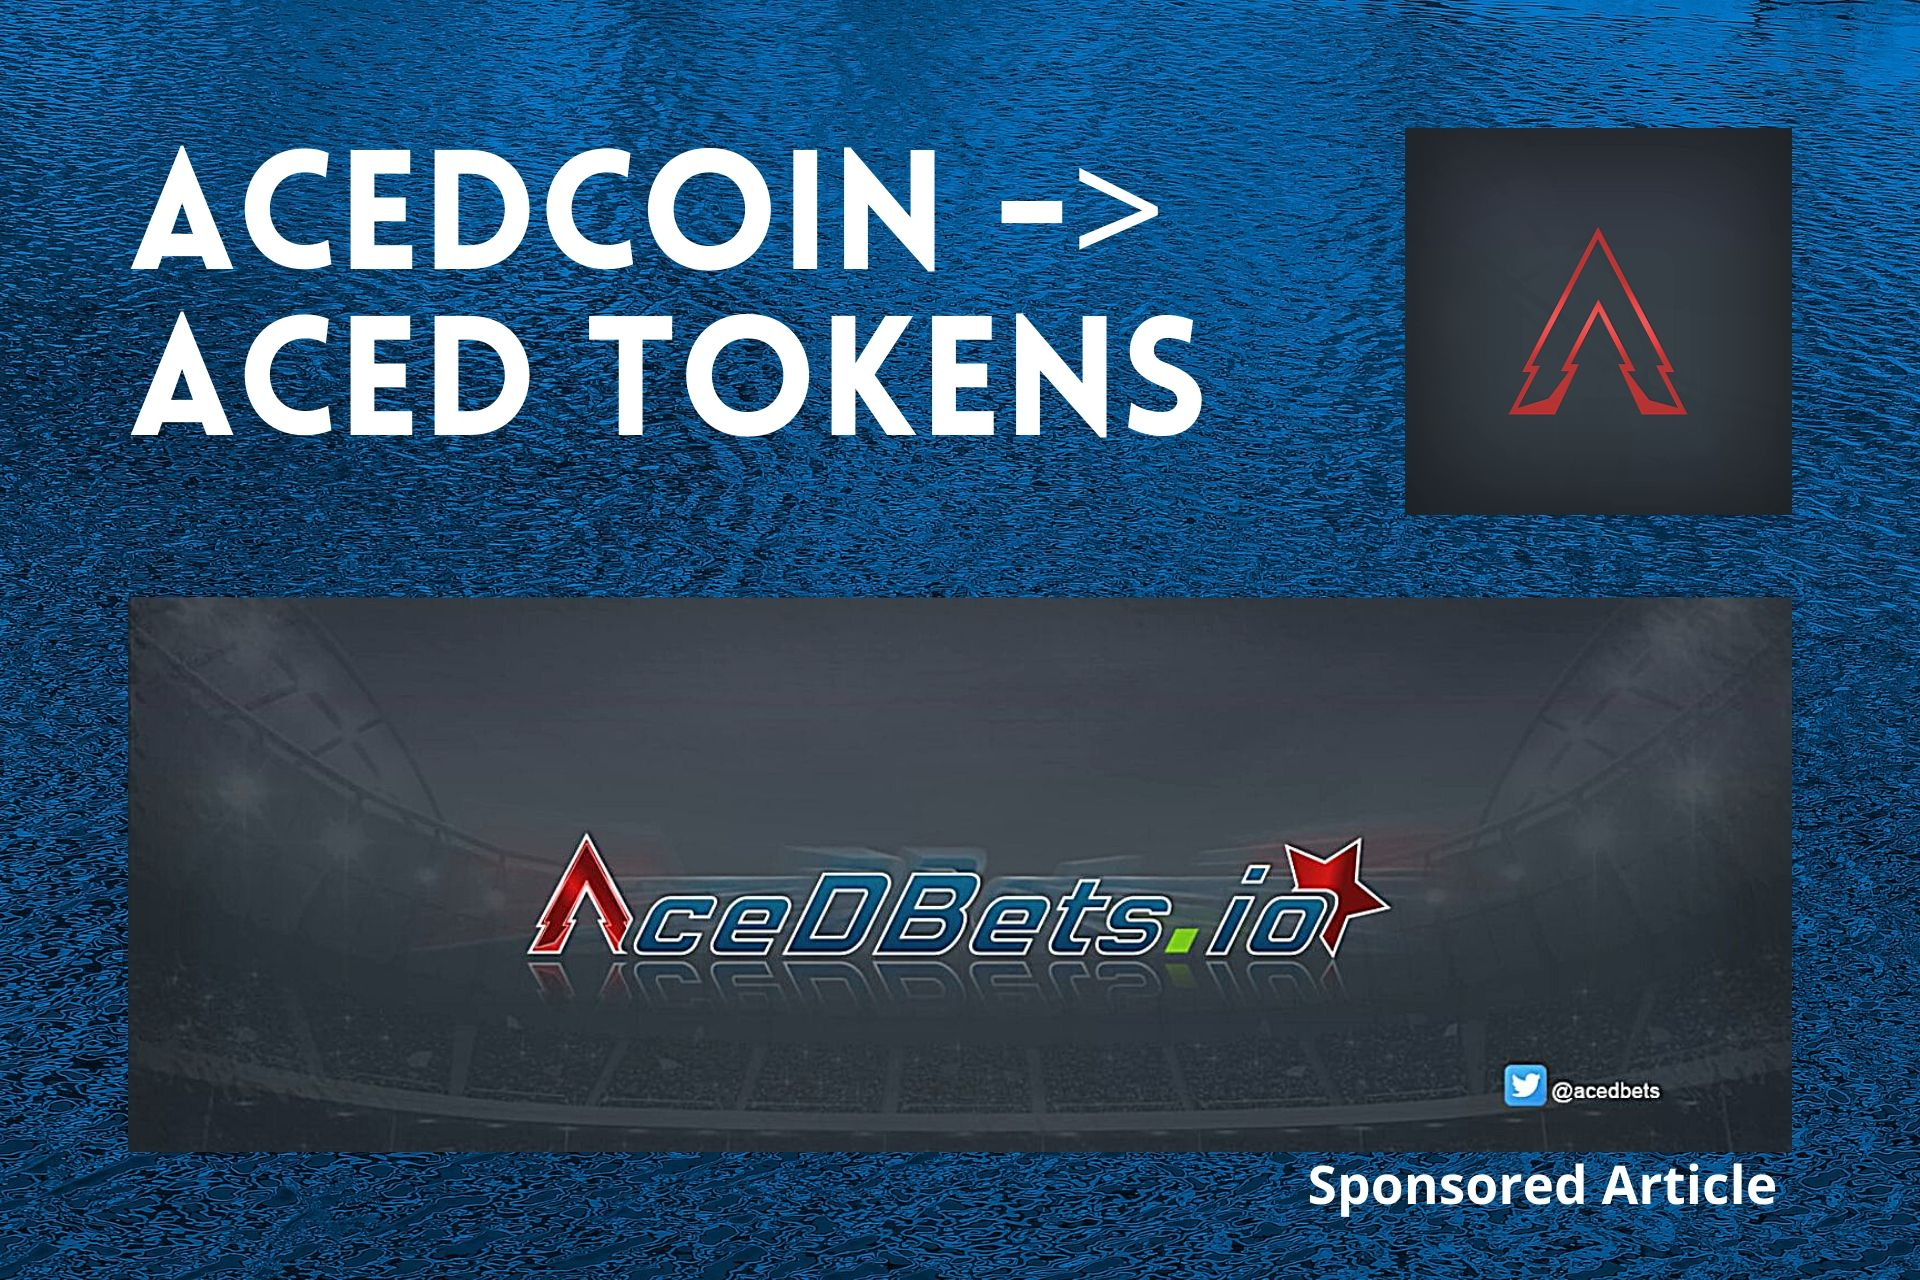 AceDcoin Will Be Switching to Ethereum Network With AceD Swapping to AceD Tokens